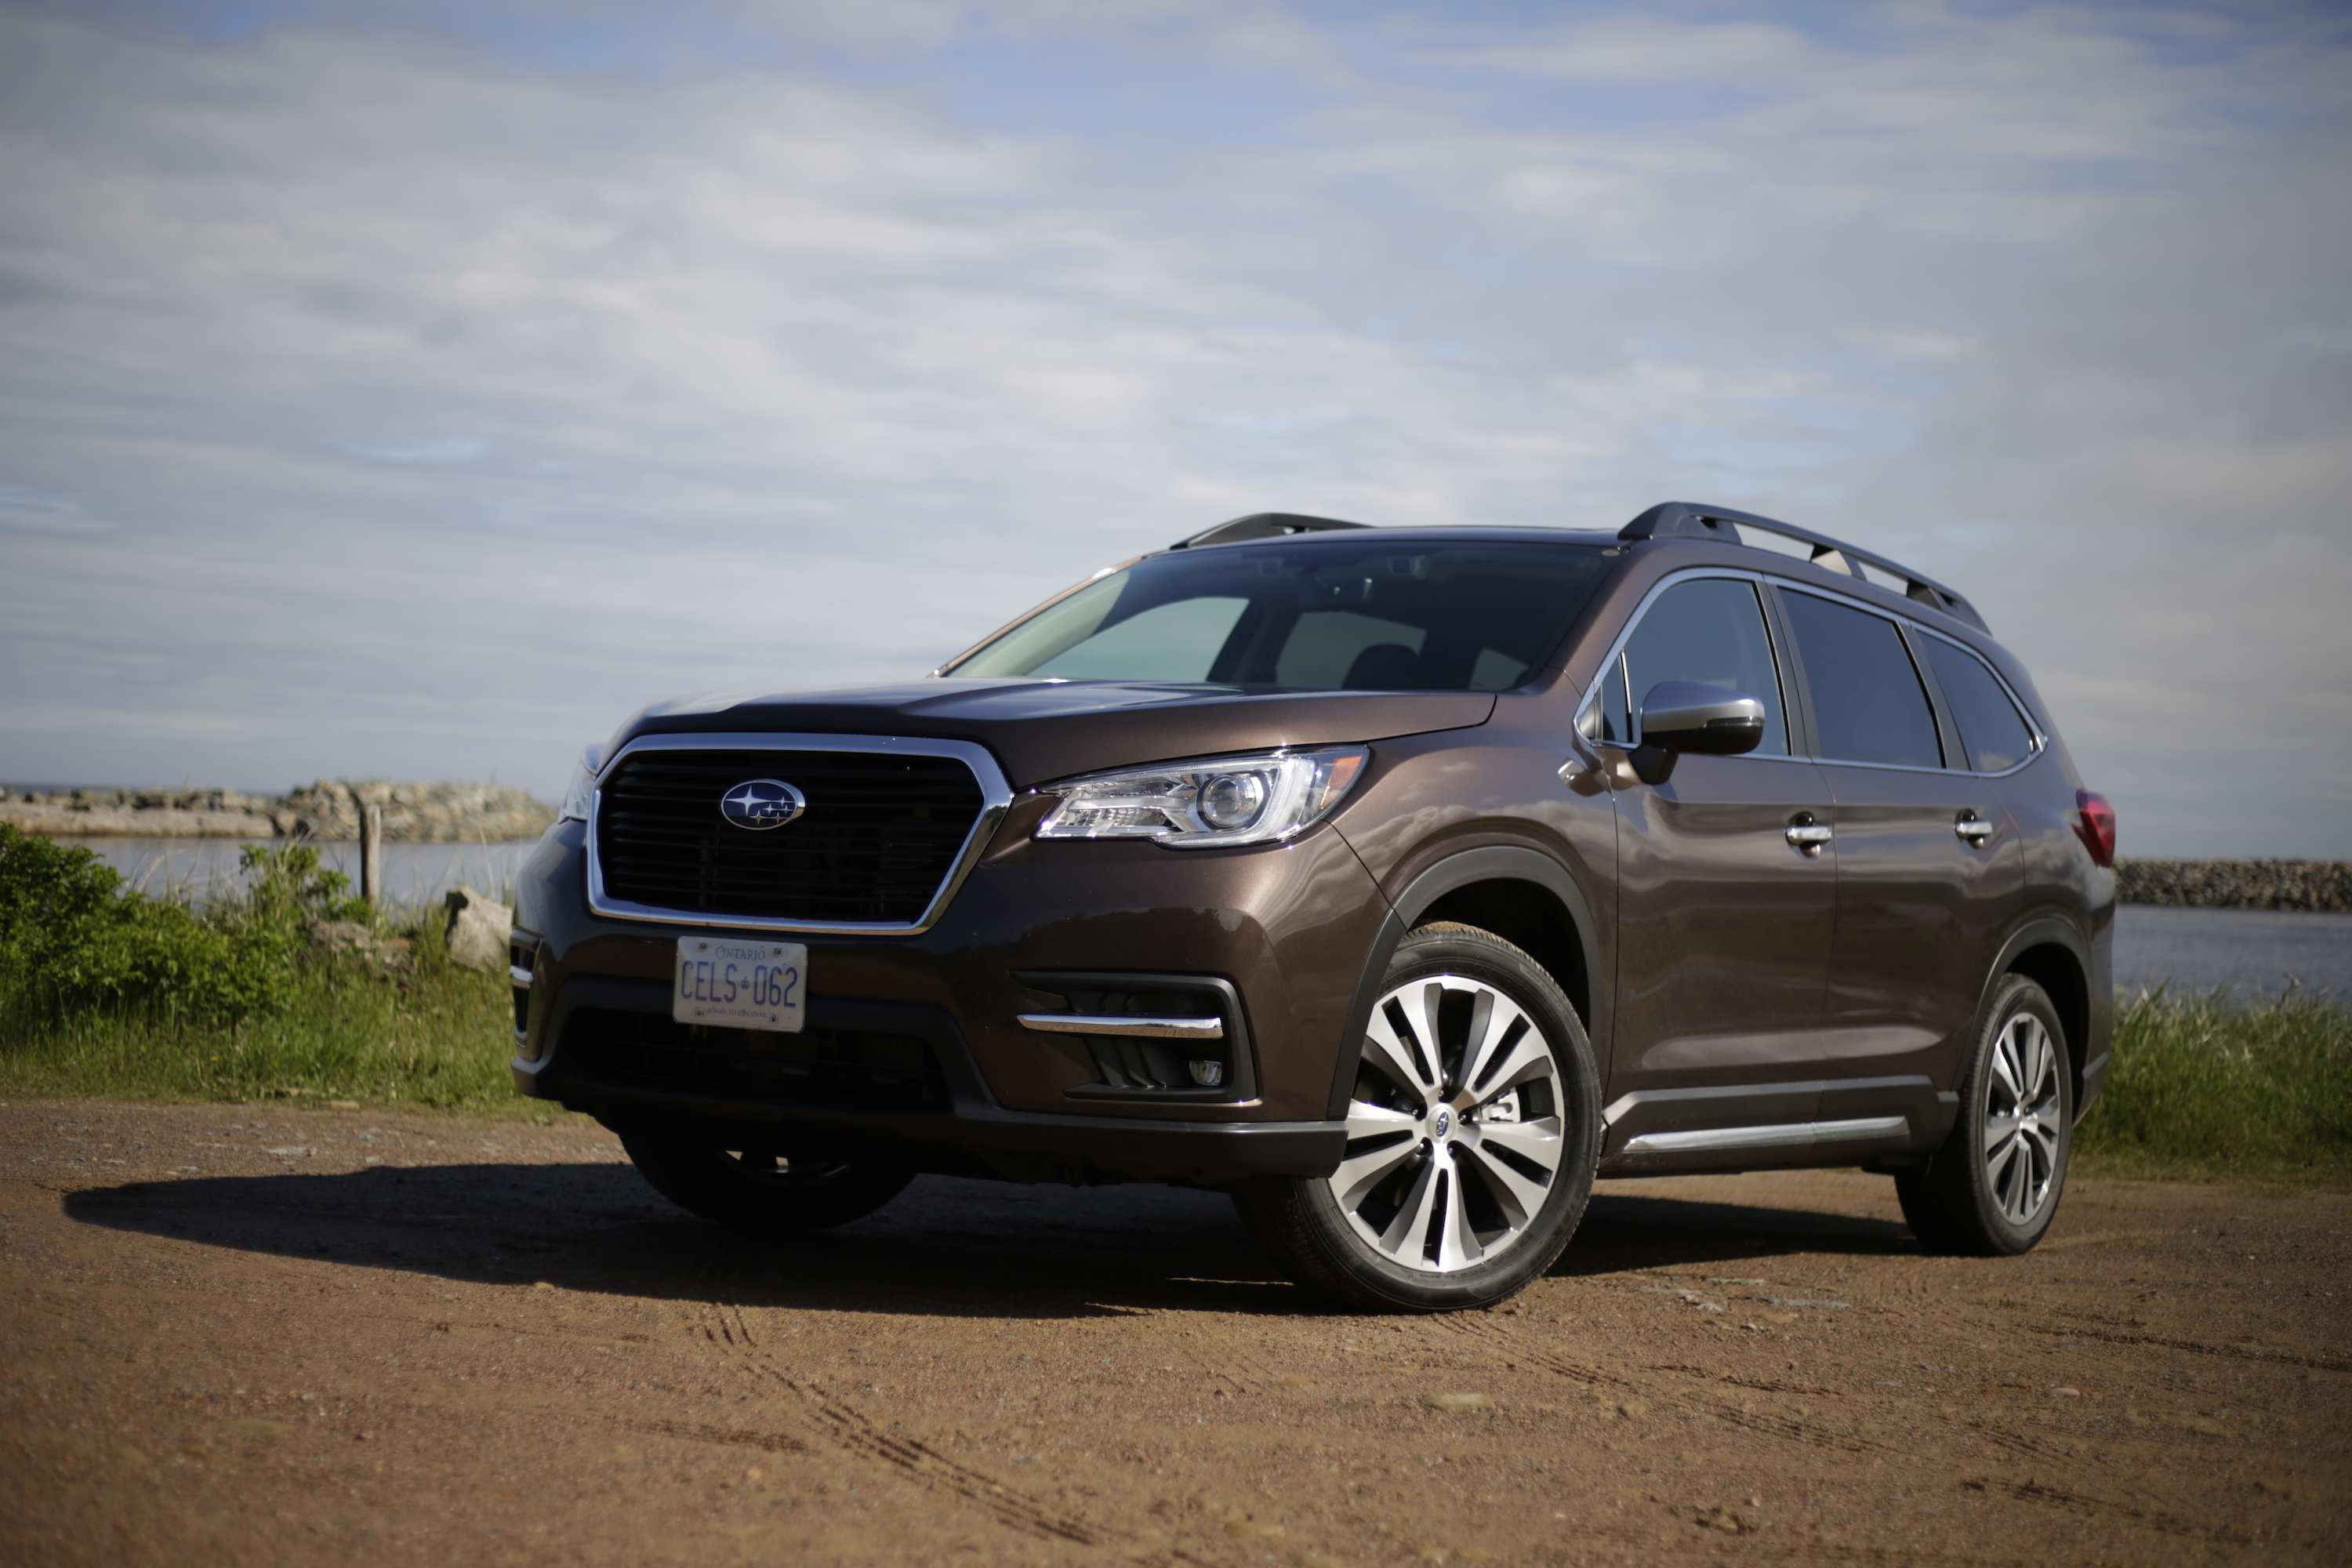 79 Best Review 2019 Subaru Ascent Fuel Economy Research New with 2019 Subaru Ascent Fuel Economy